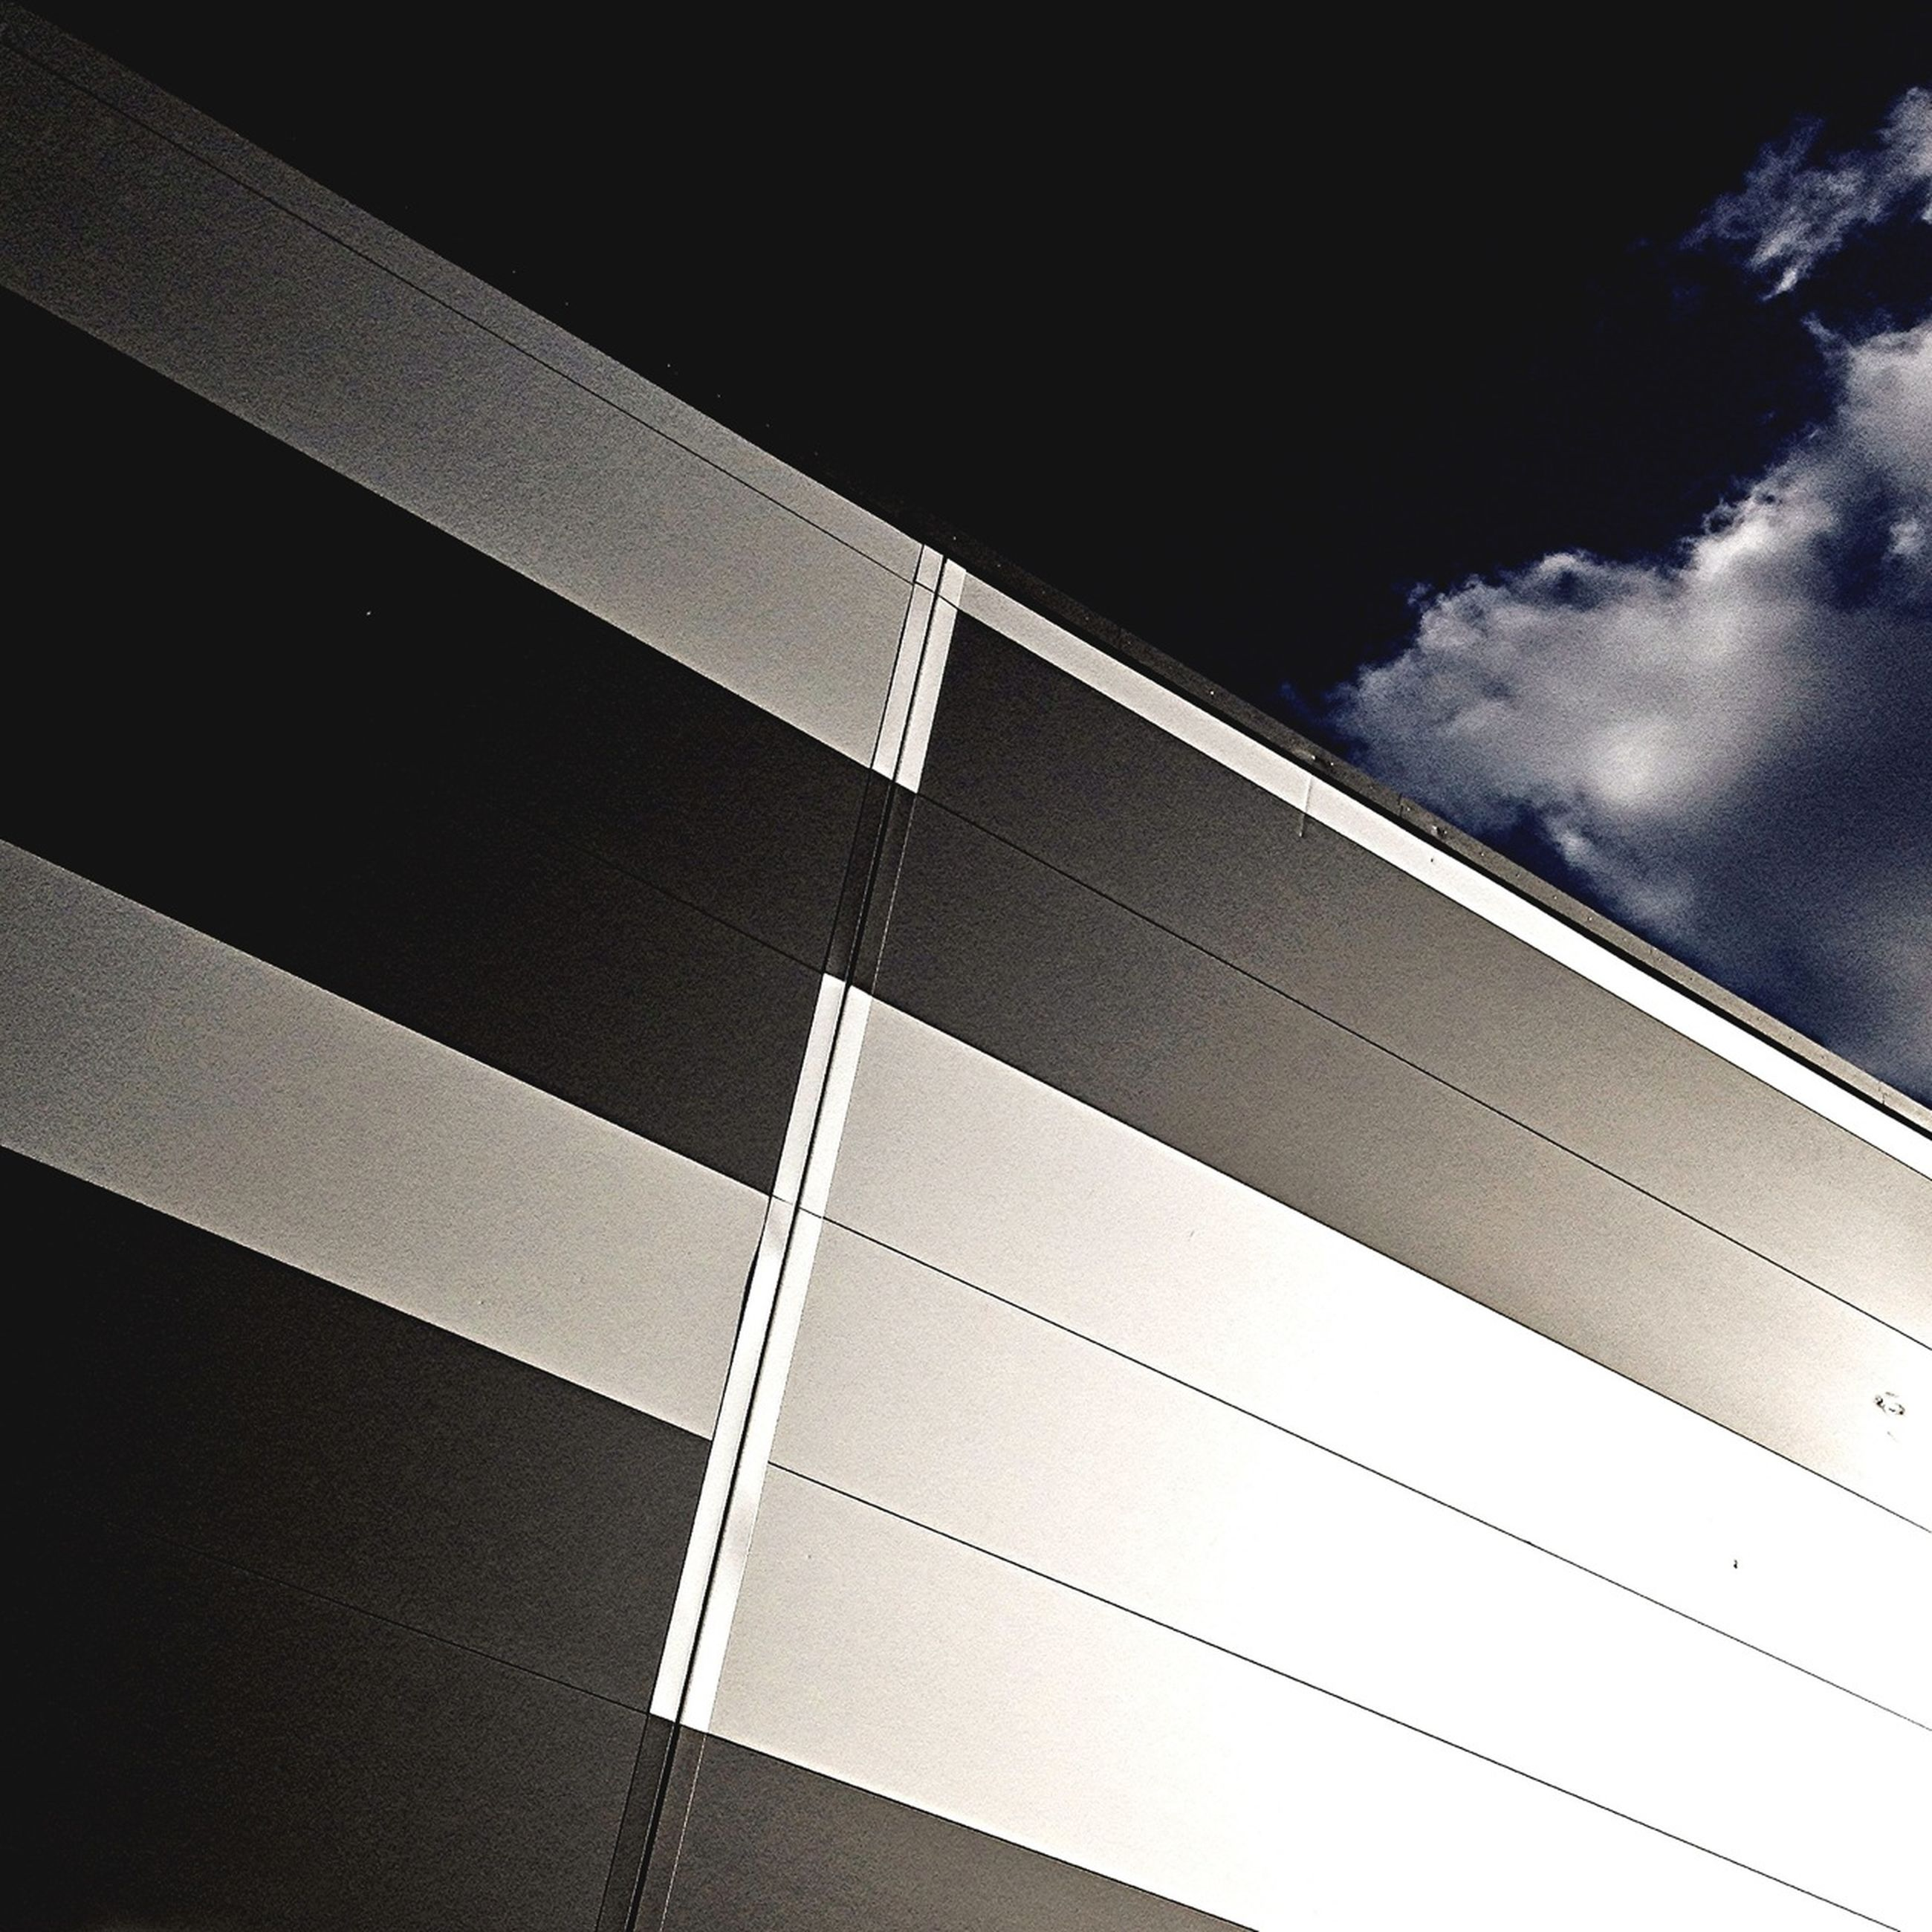 low angle view, sky, built structure, architecture, cloud - sky, no people, pattern, modern, connection, outdoors, cloudy, day, part of, ceiling, directly below, transportation, building exterior, tilt, cloud